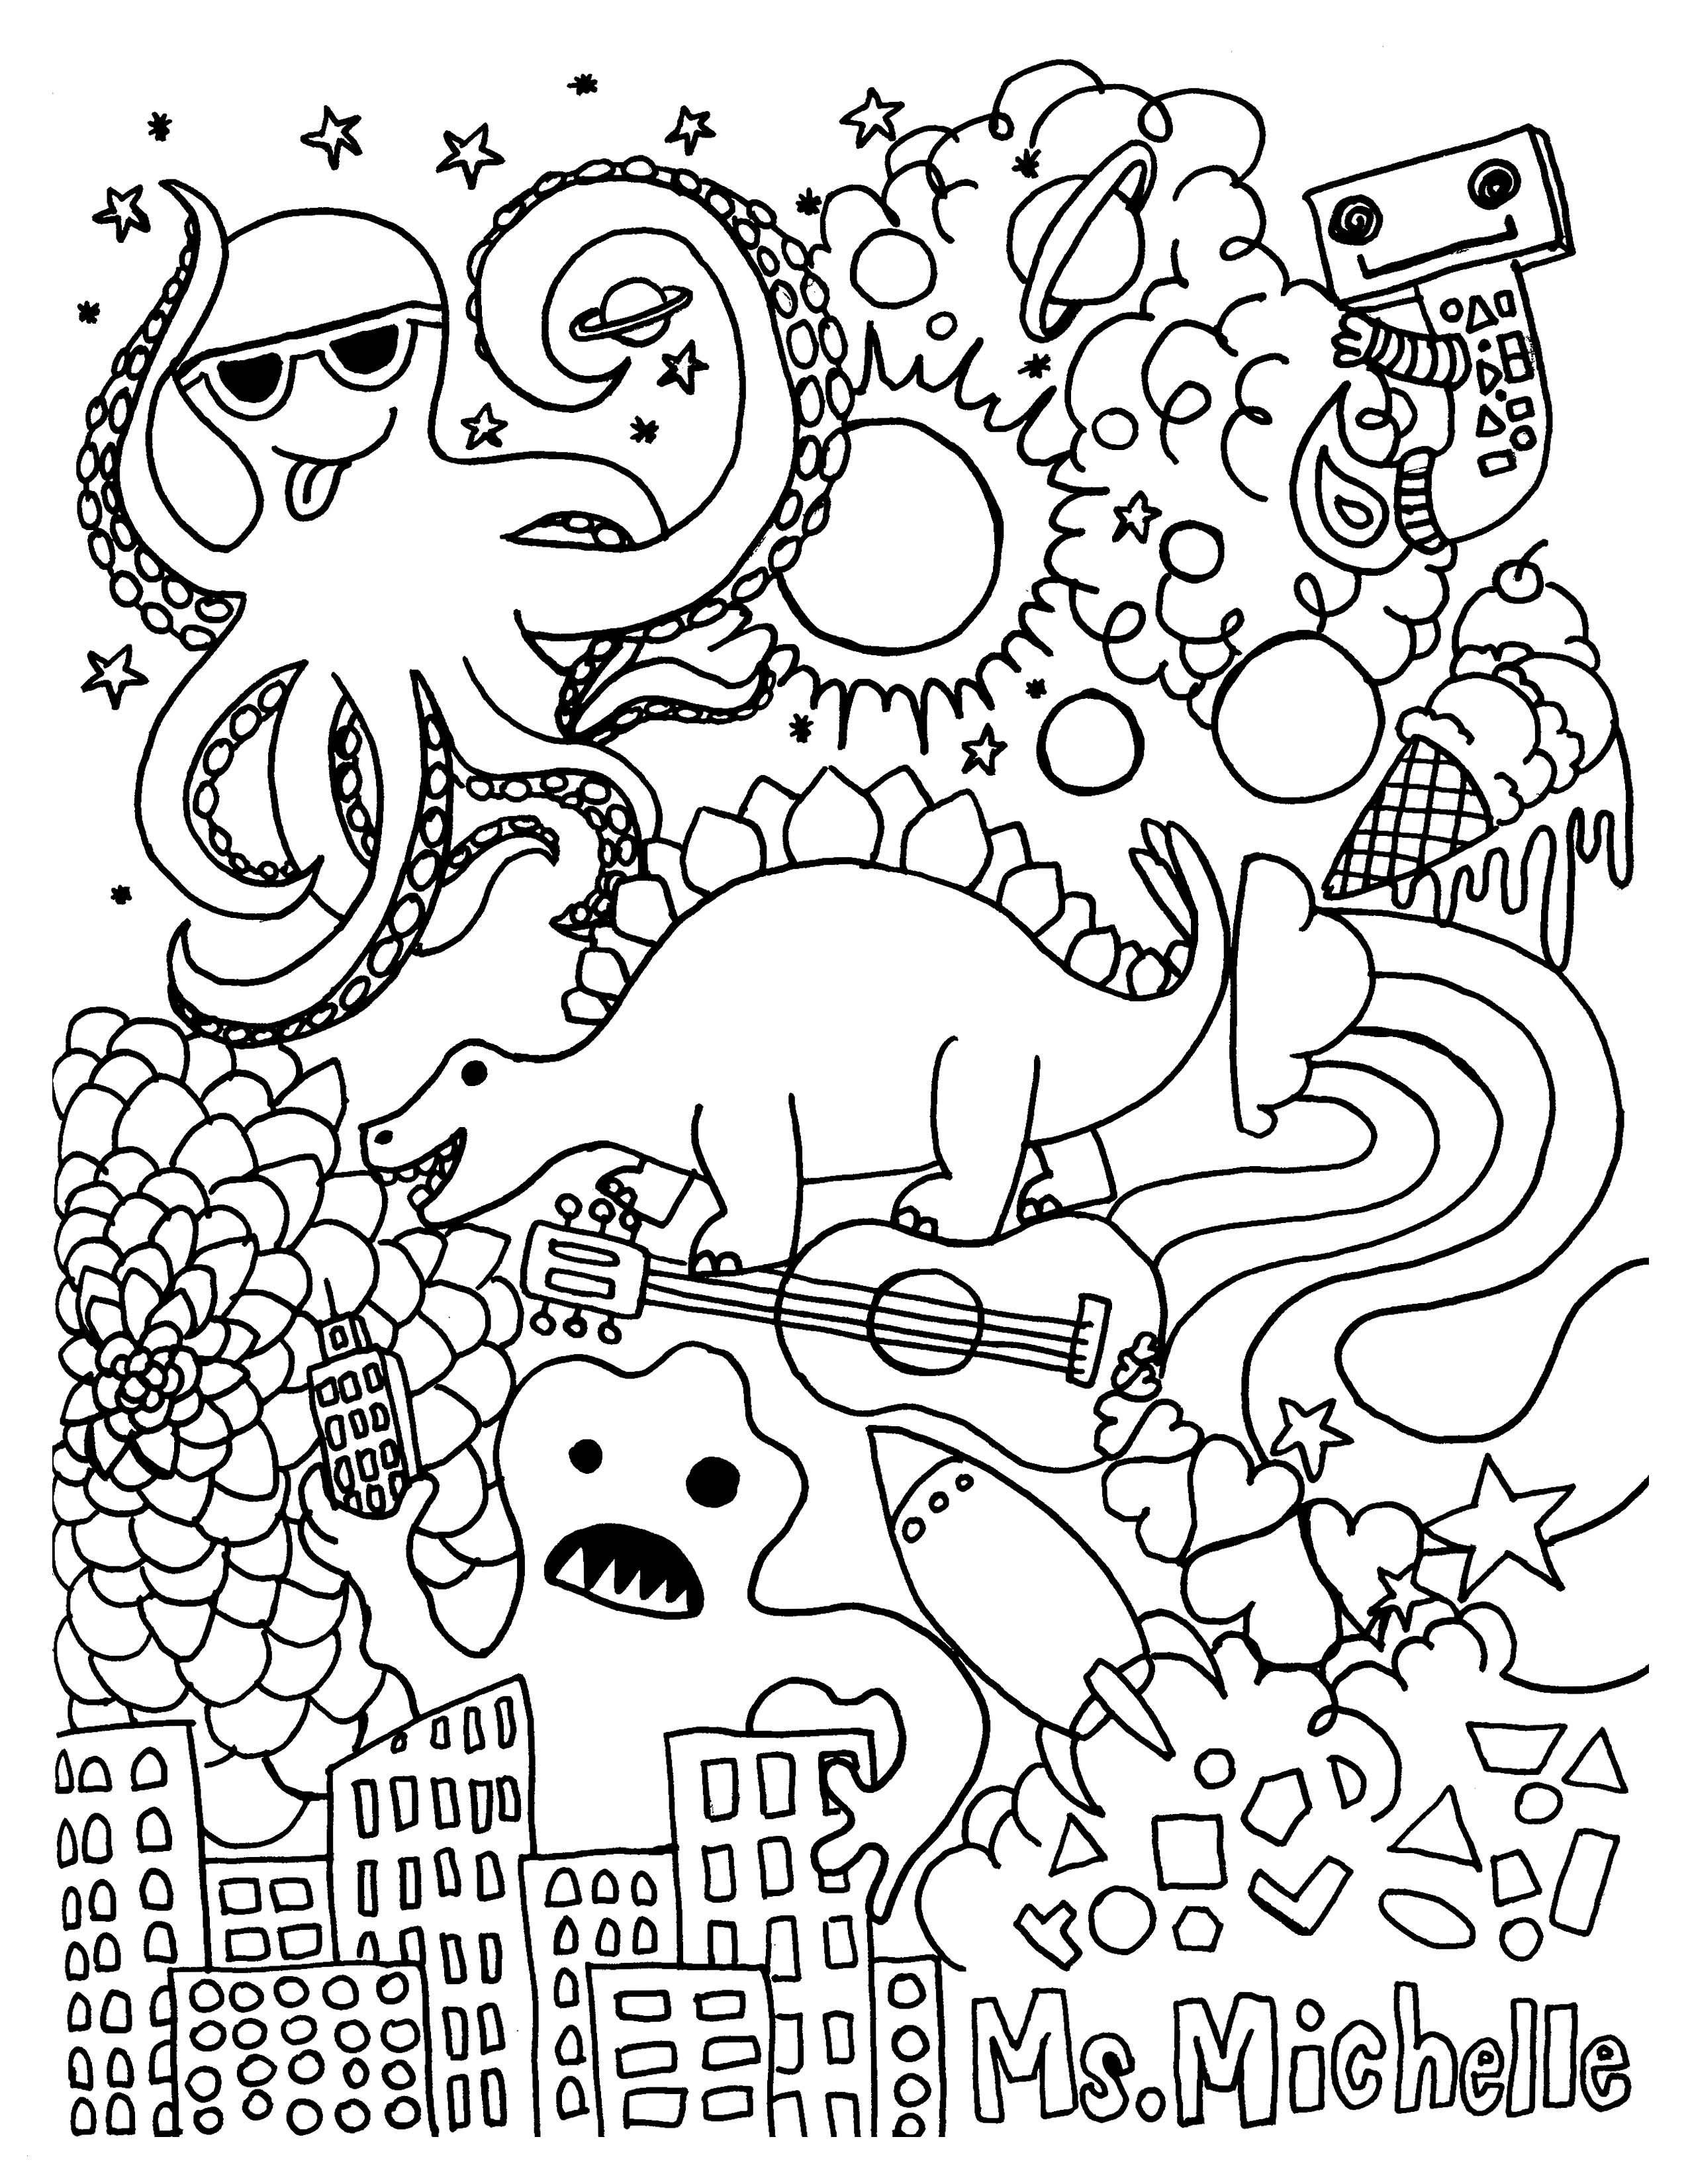 New testament coloring pages for kids colouring templates for kids 39 girl coloring pages for